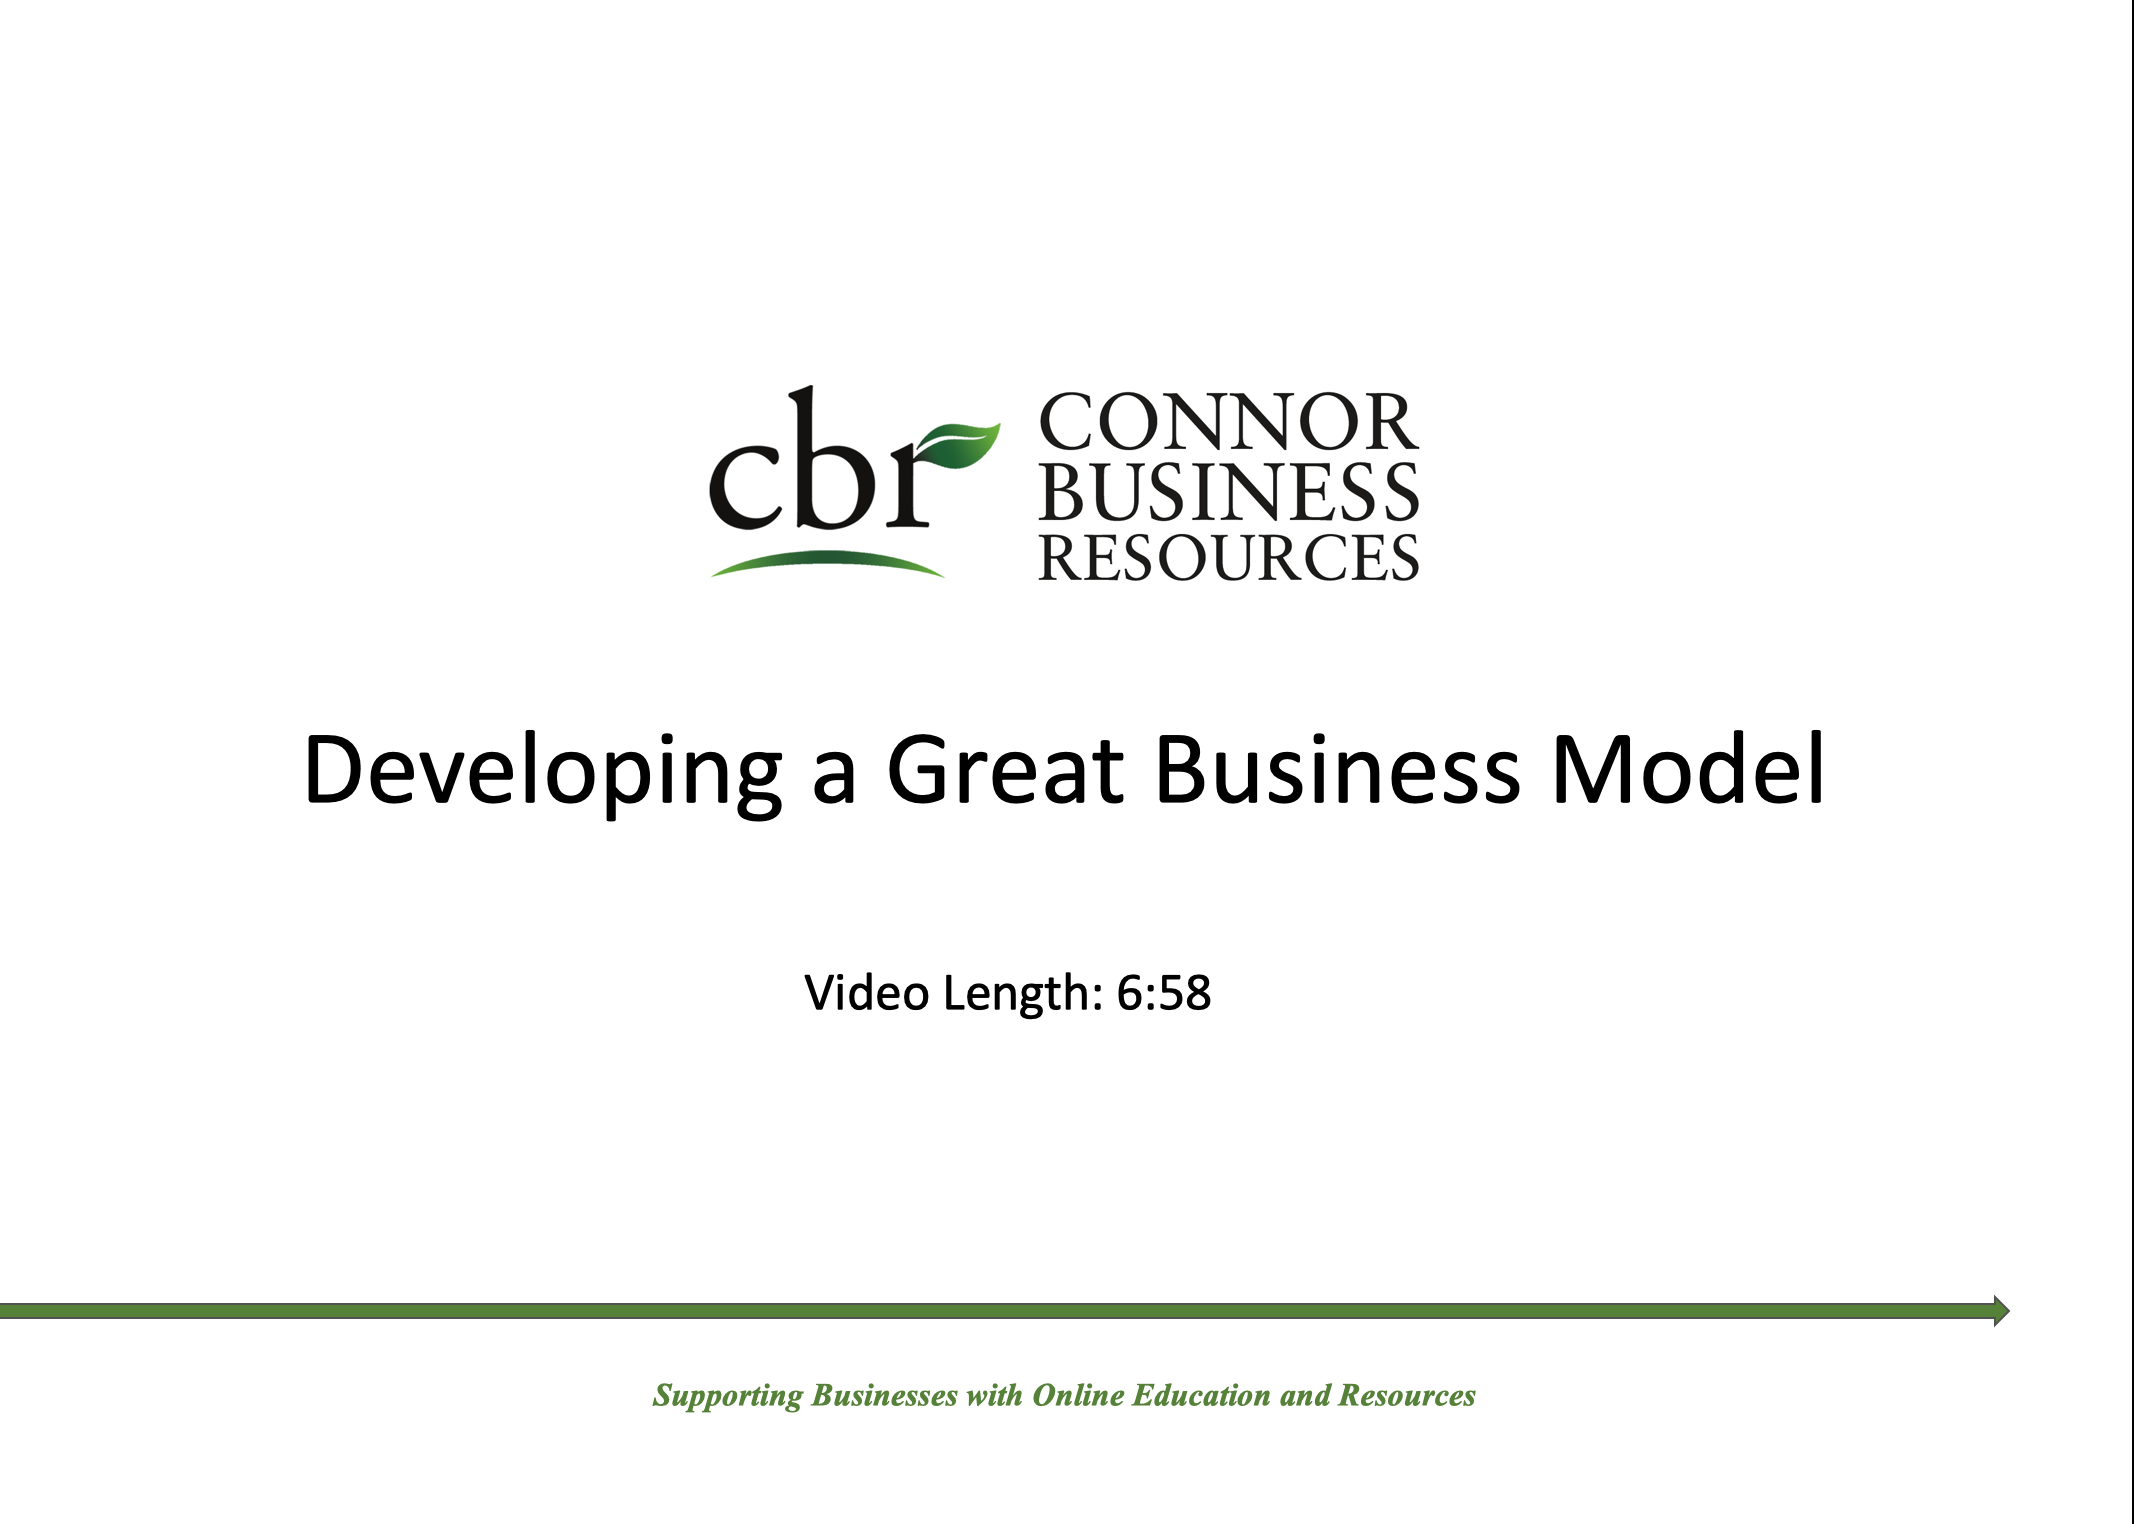 Developing a Great Business Model